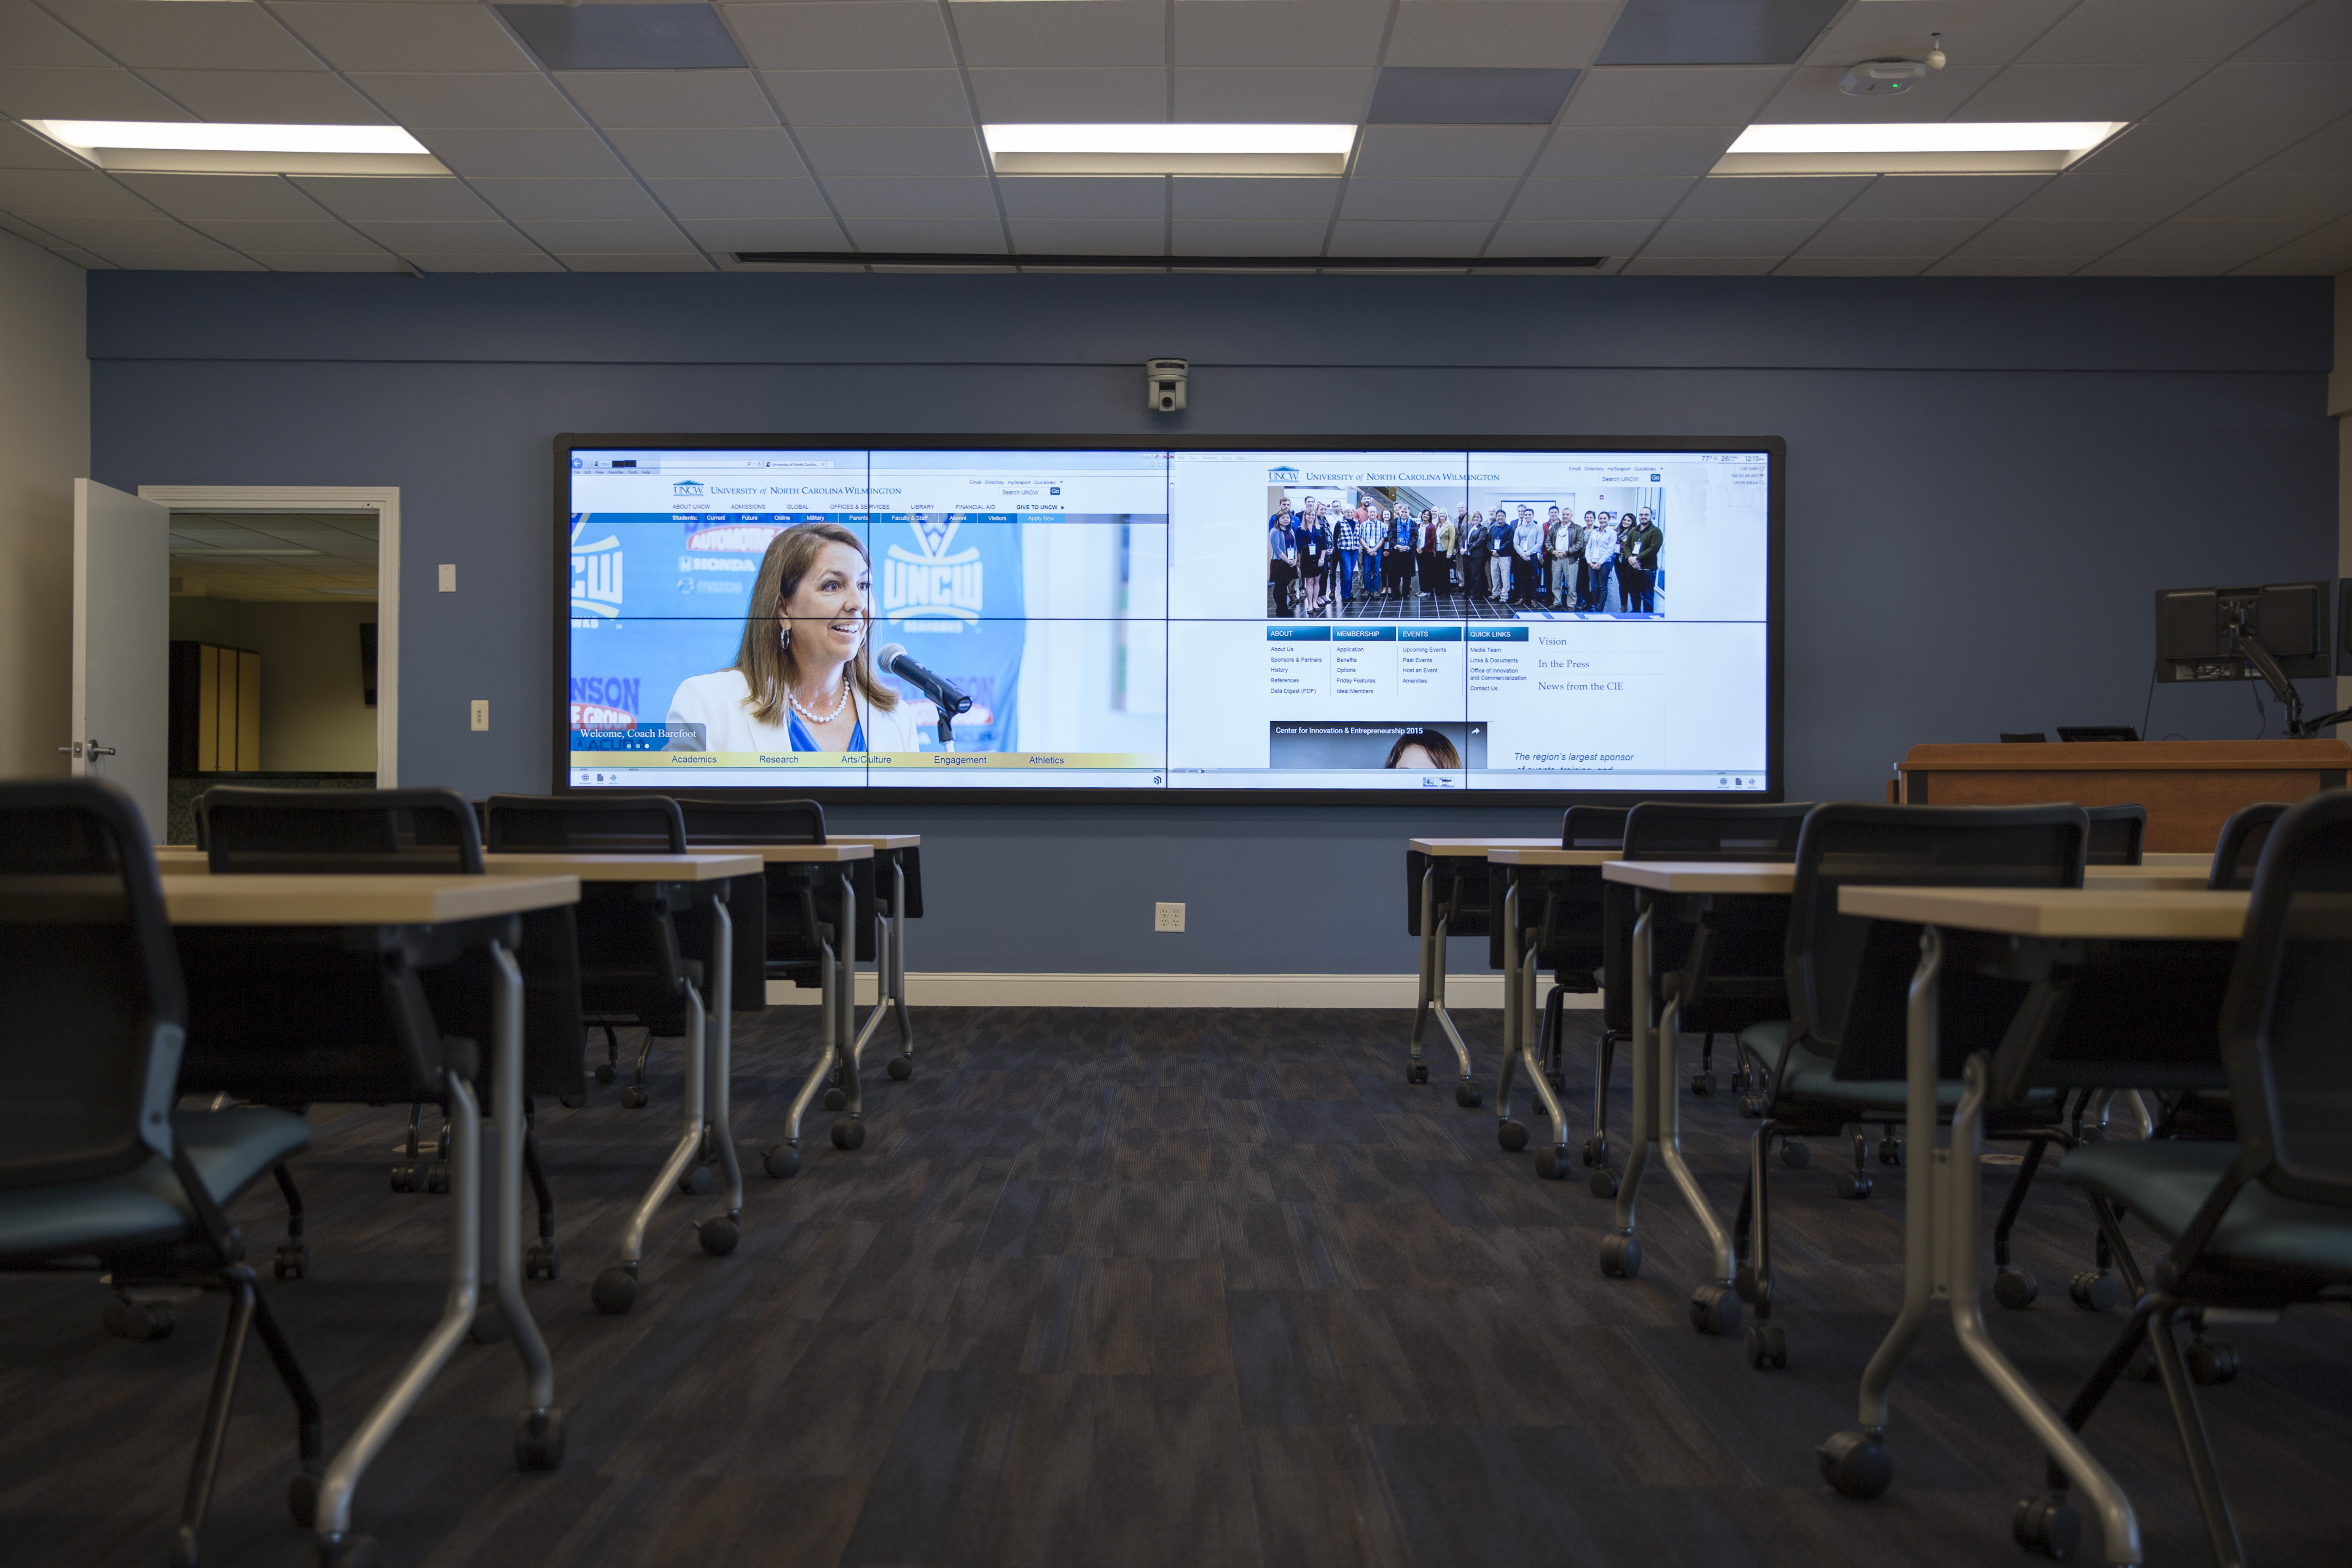 New And Improved Event Space Video Wall